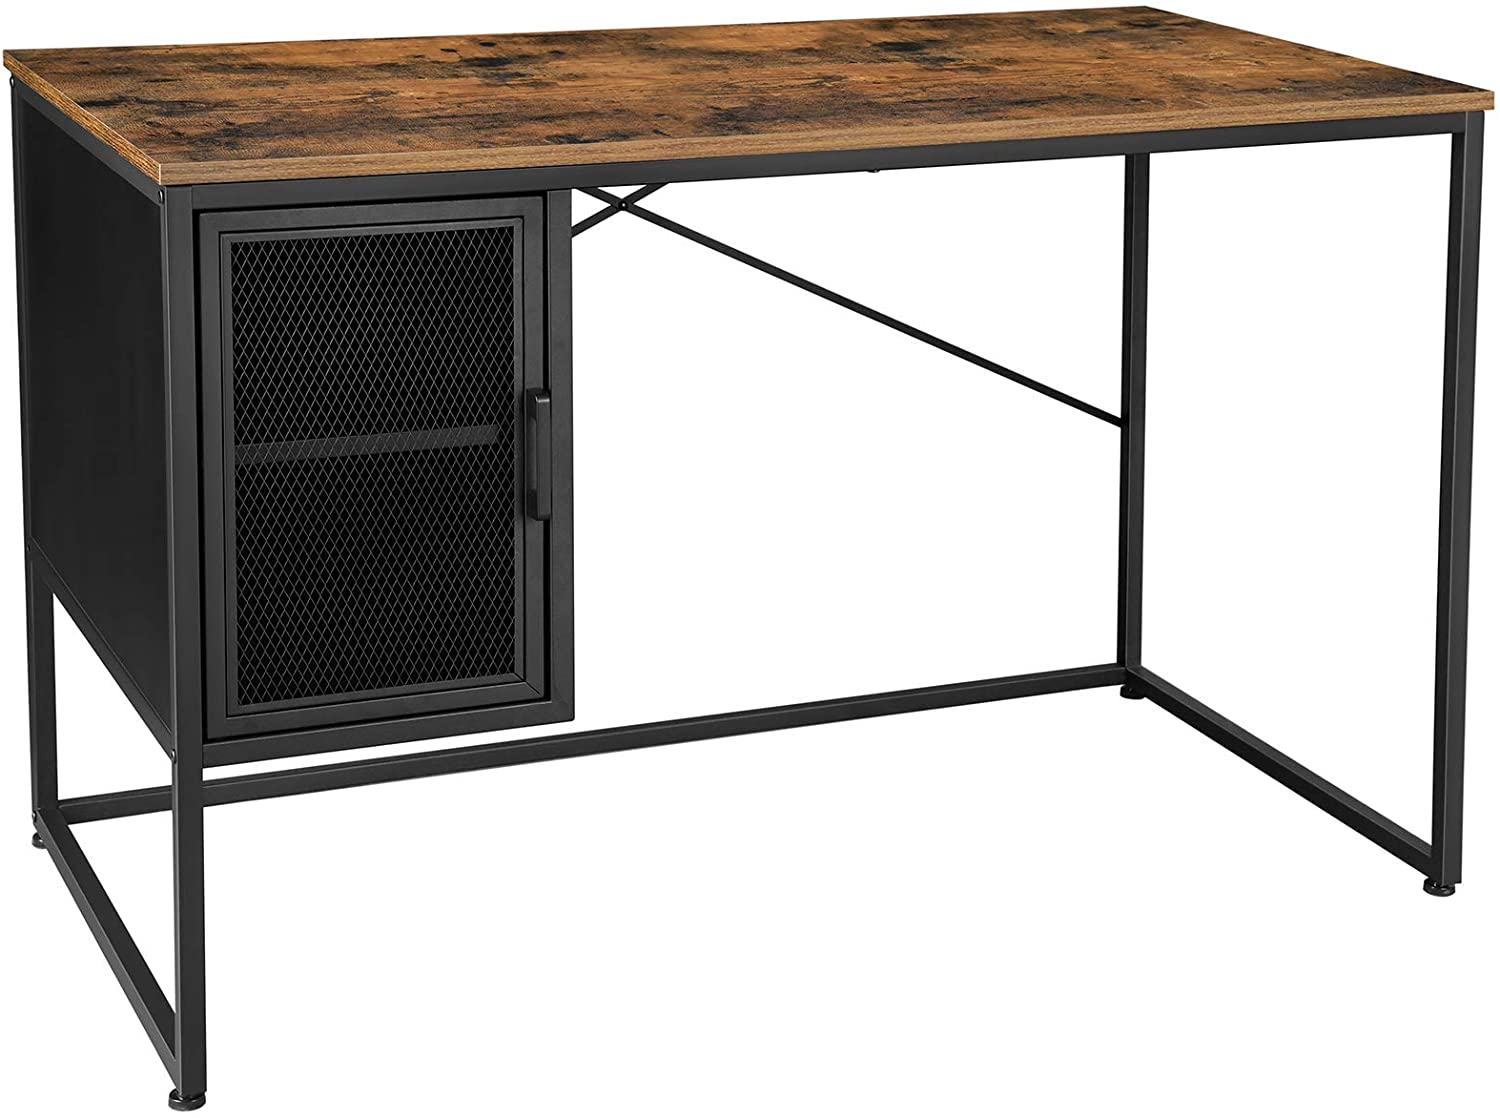 Home Office Desk with Mesh Door Cabinet